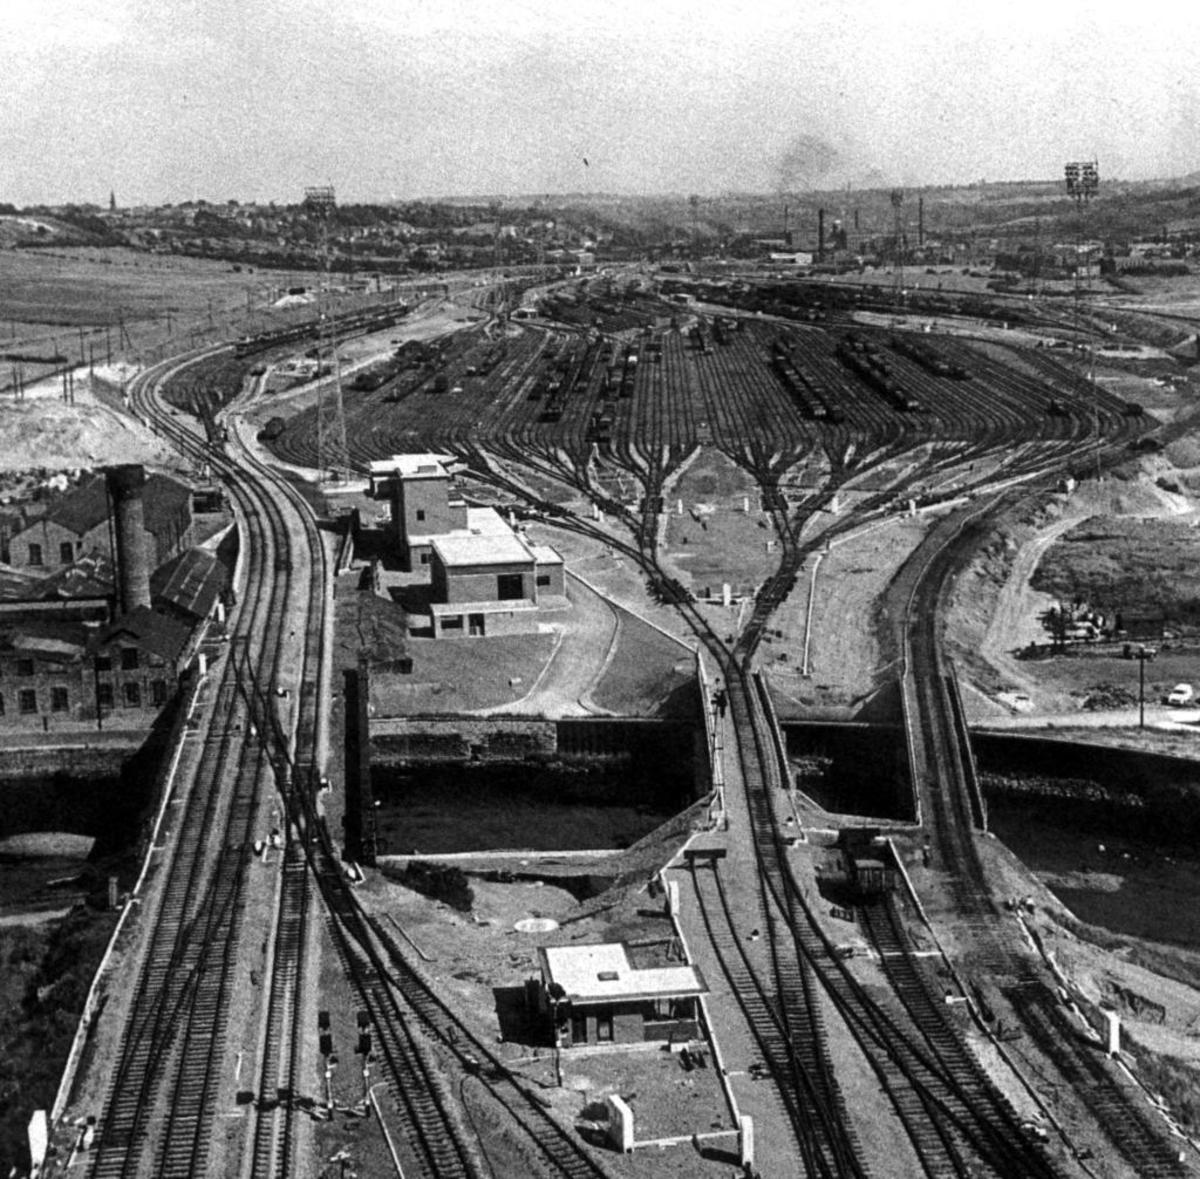 Erimus (Tees) Yard near Newport, Middlesbrough was built too late to achieve its aim. 'Wagon Load' was on its way out, block trains were coming in and hump shunting was under notice.